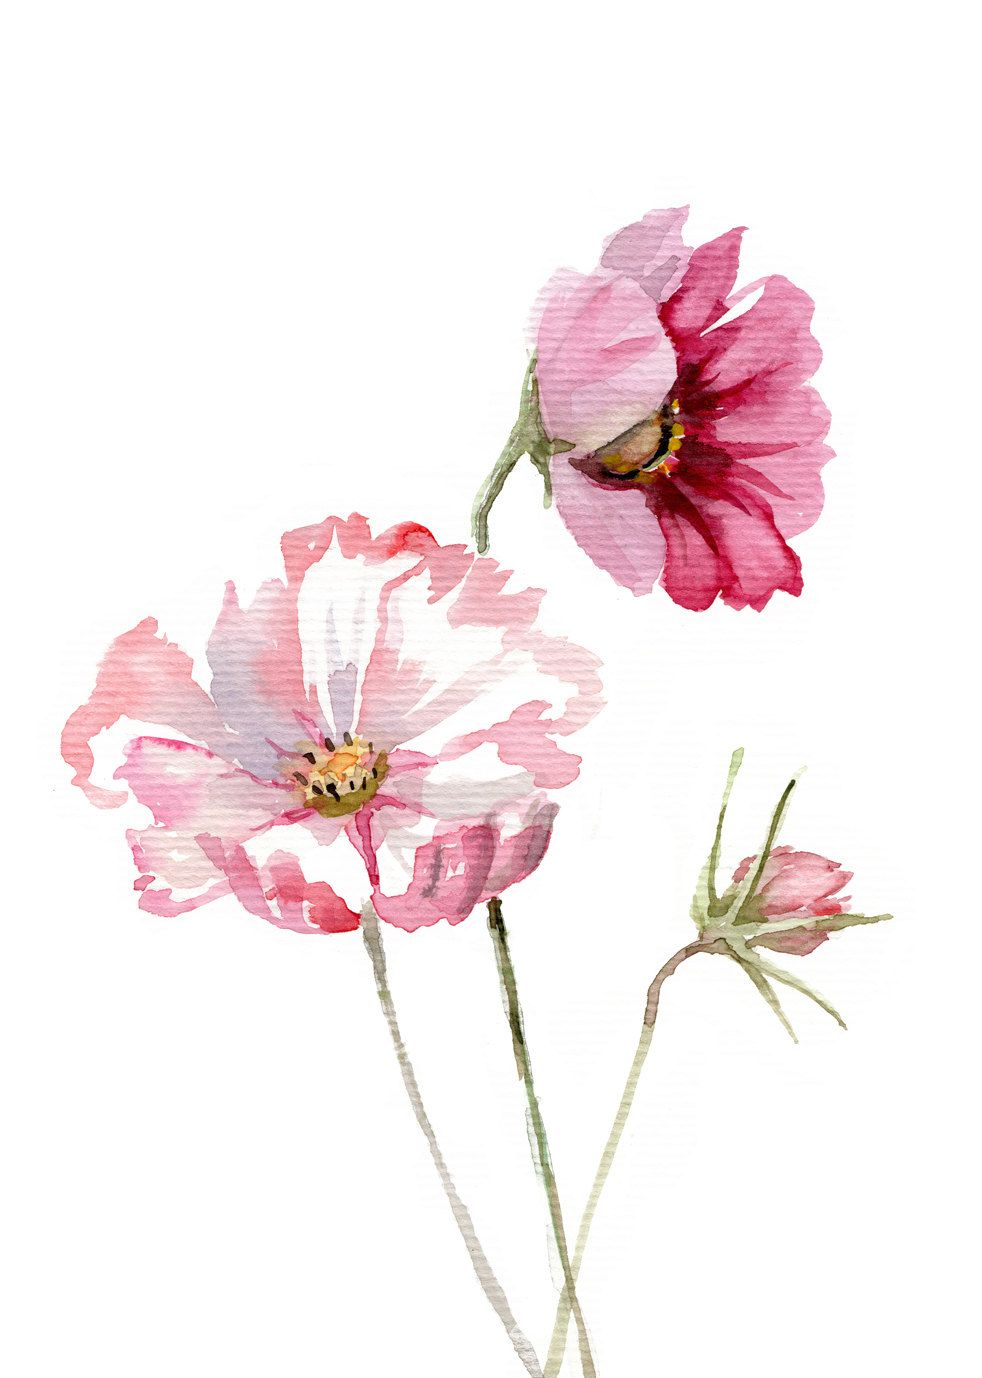 Cosmos Flower Watercolor Botanic Painting Giclee Print In 2020